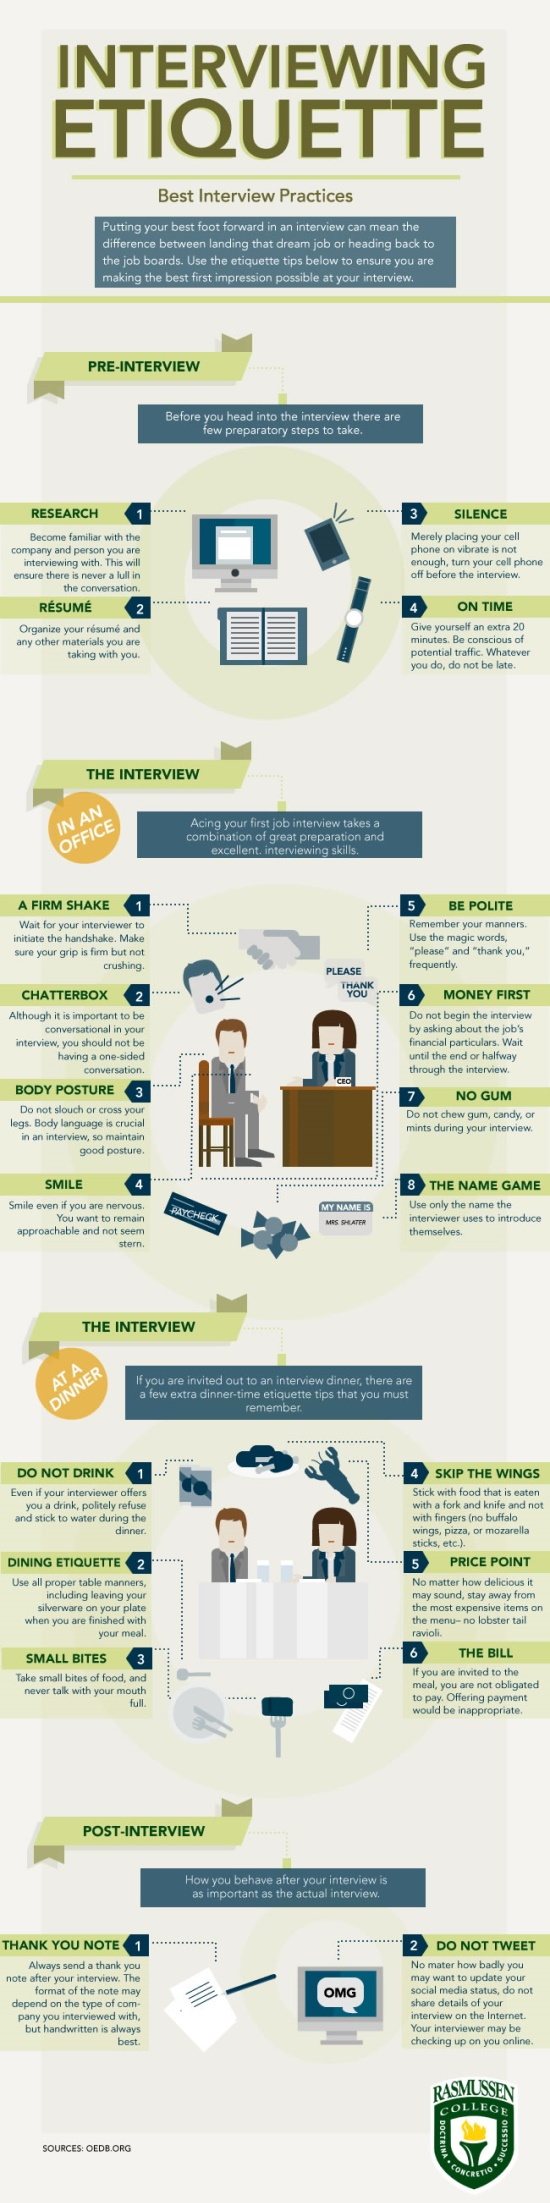 Most Important Practices to Clear an Interview